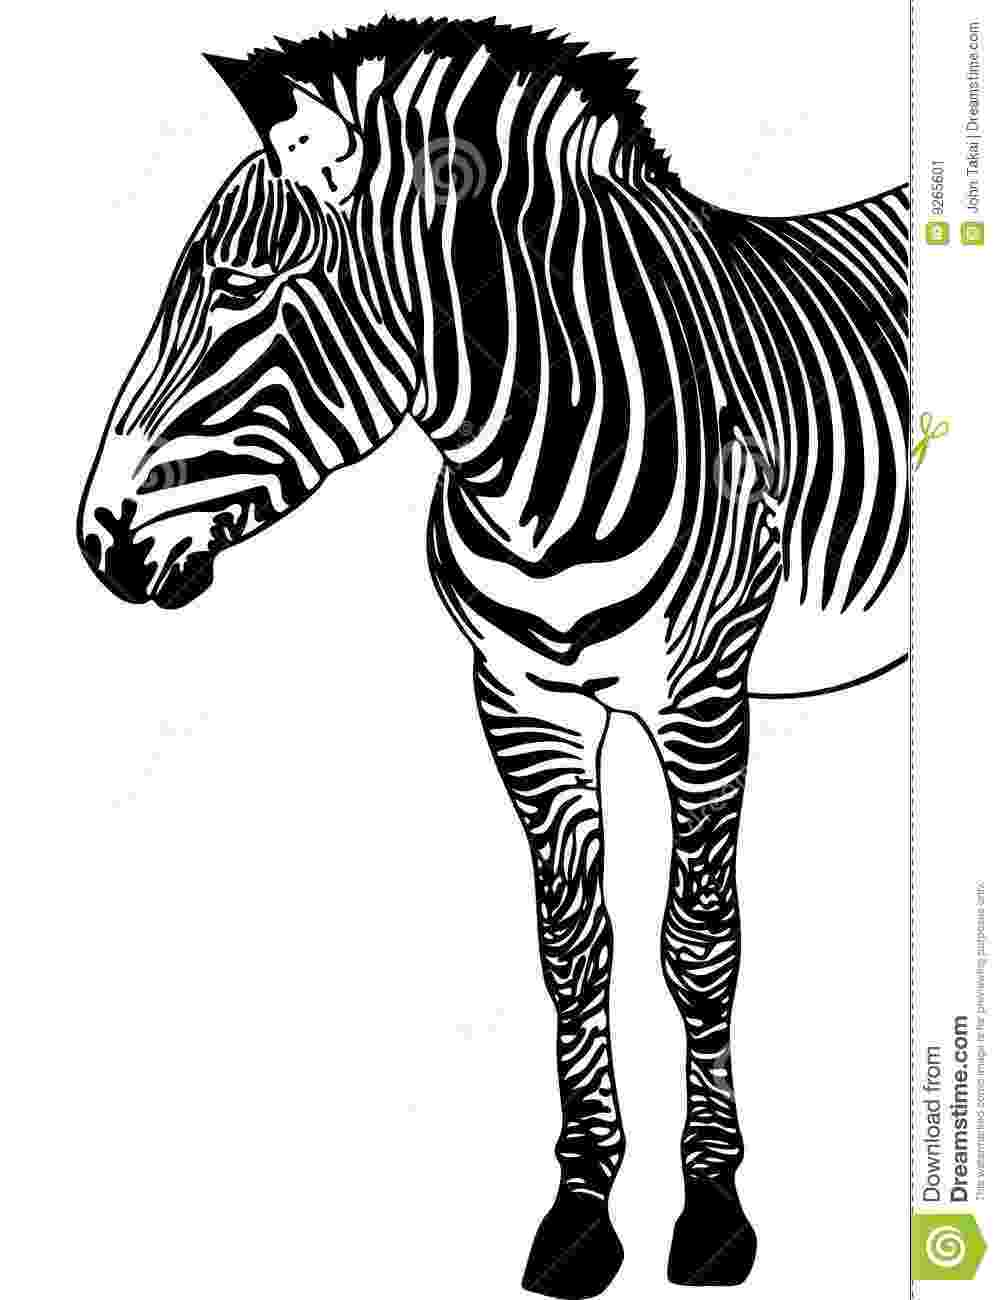 zebra sketch how to draw a zebra youtube zebra sketch